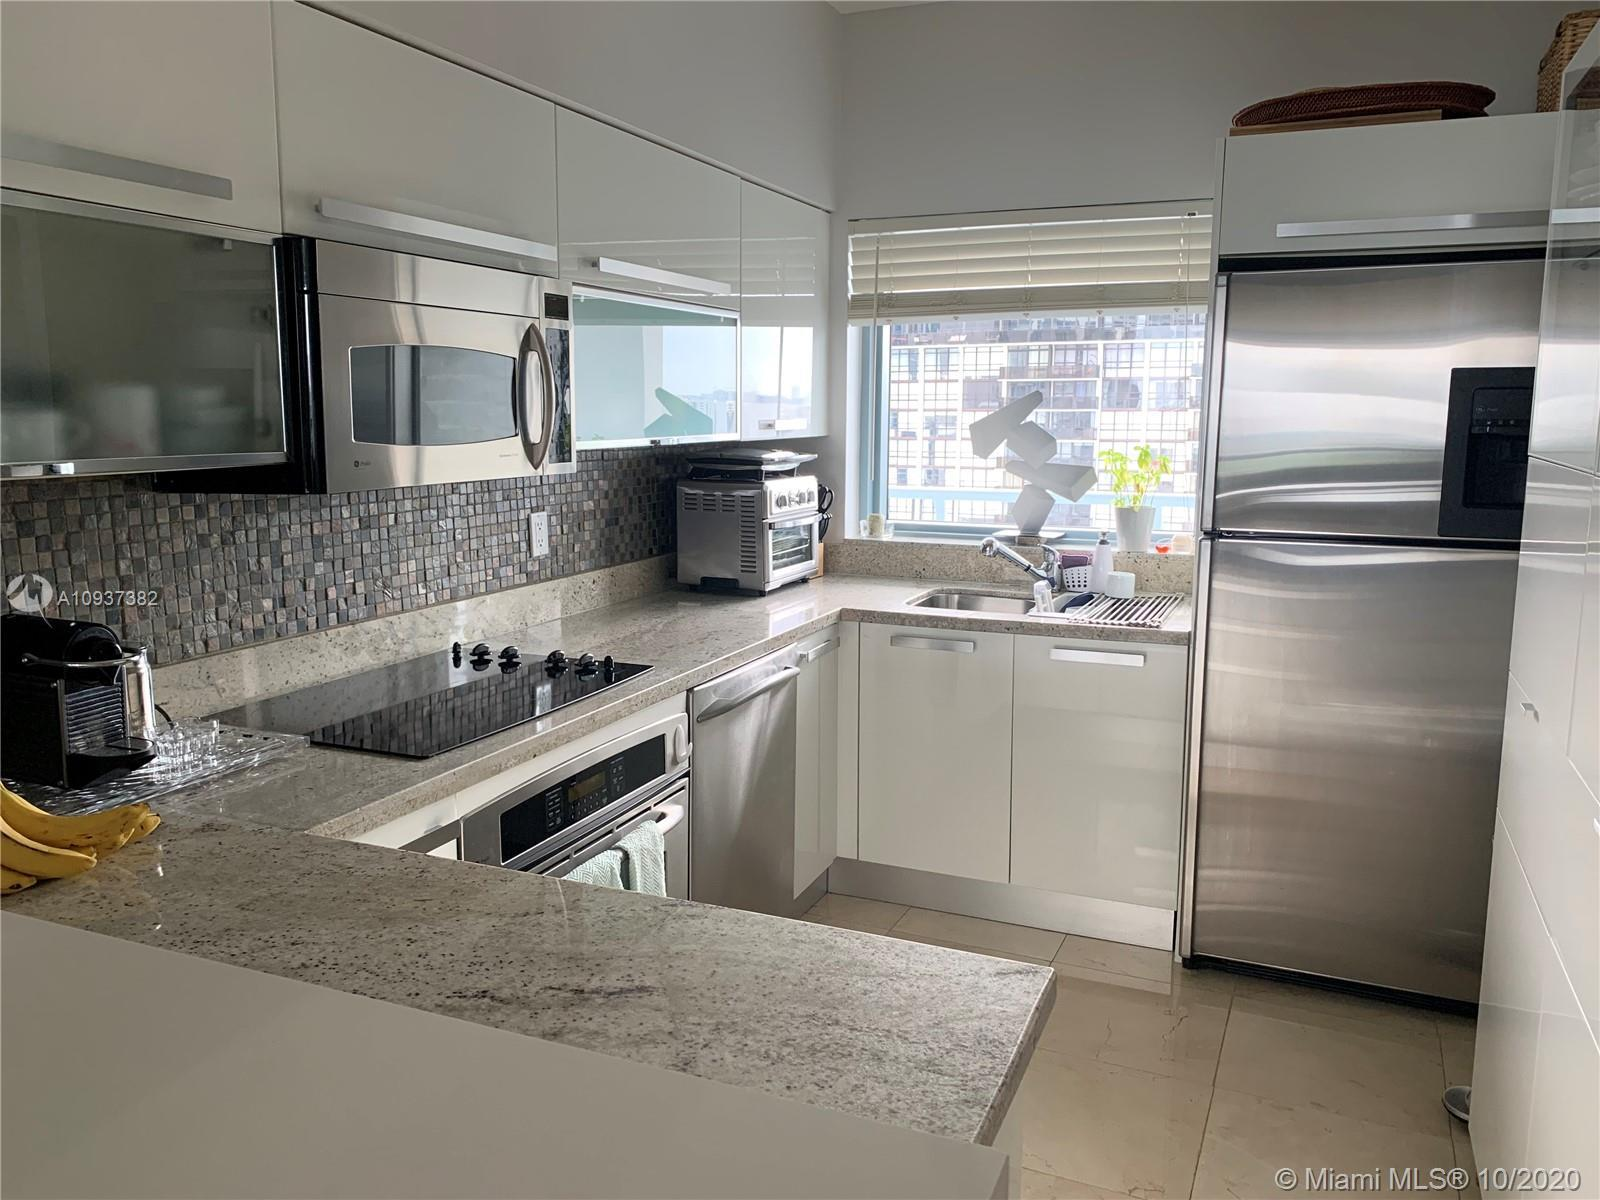 Great impecable apartment, open kitchen with quartz and granite countertop, stainless steel applianc